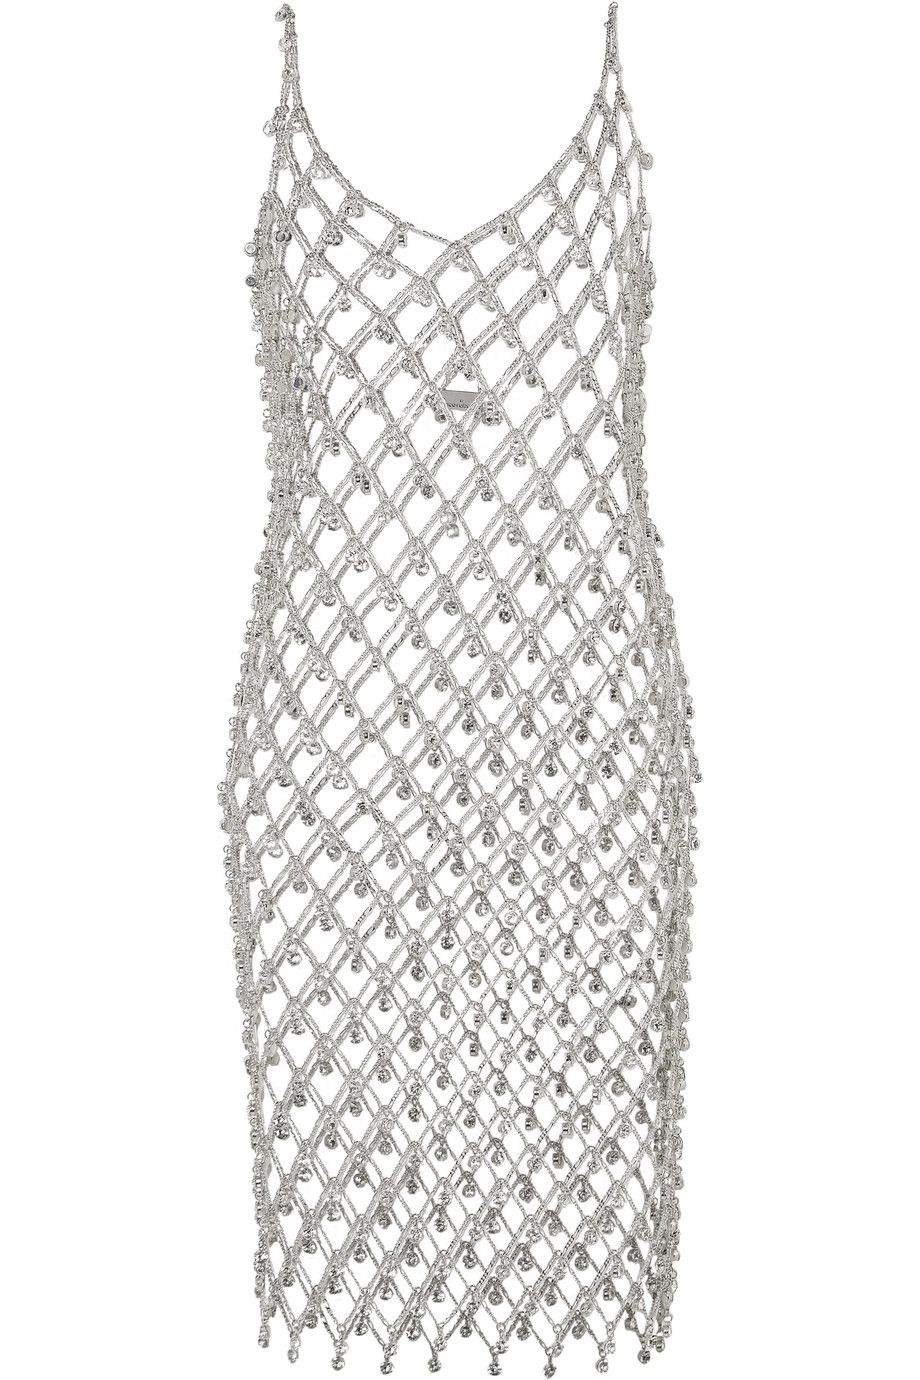 0a647131e44 Paco Rabanne s signature chain link pieces are incredibly detailed - each  one is made up of thousands of elements and can take up to twenty-five  hours to ...